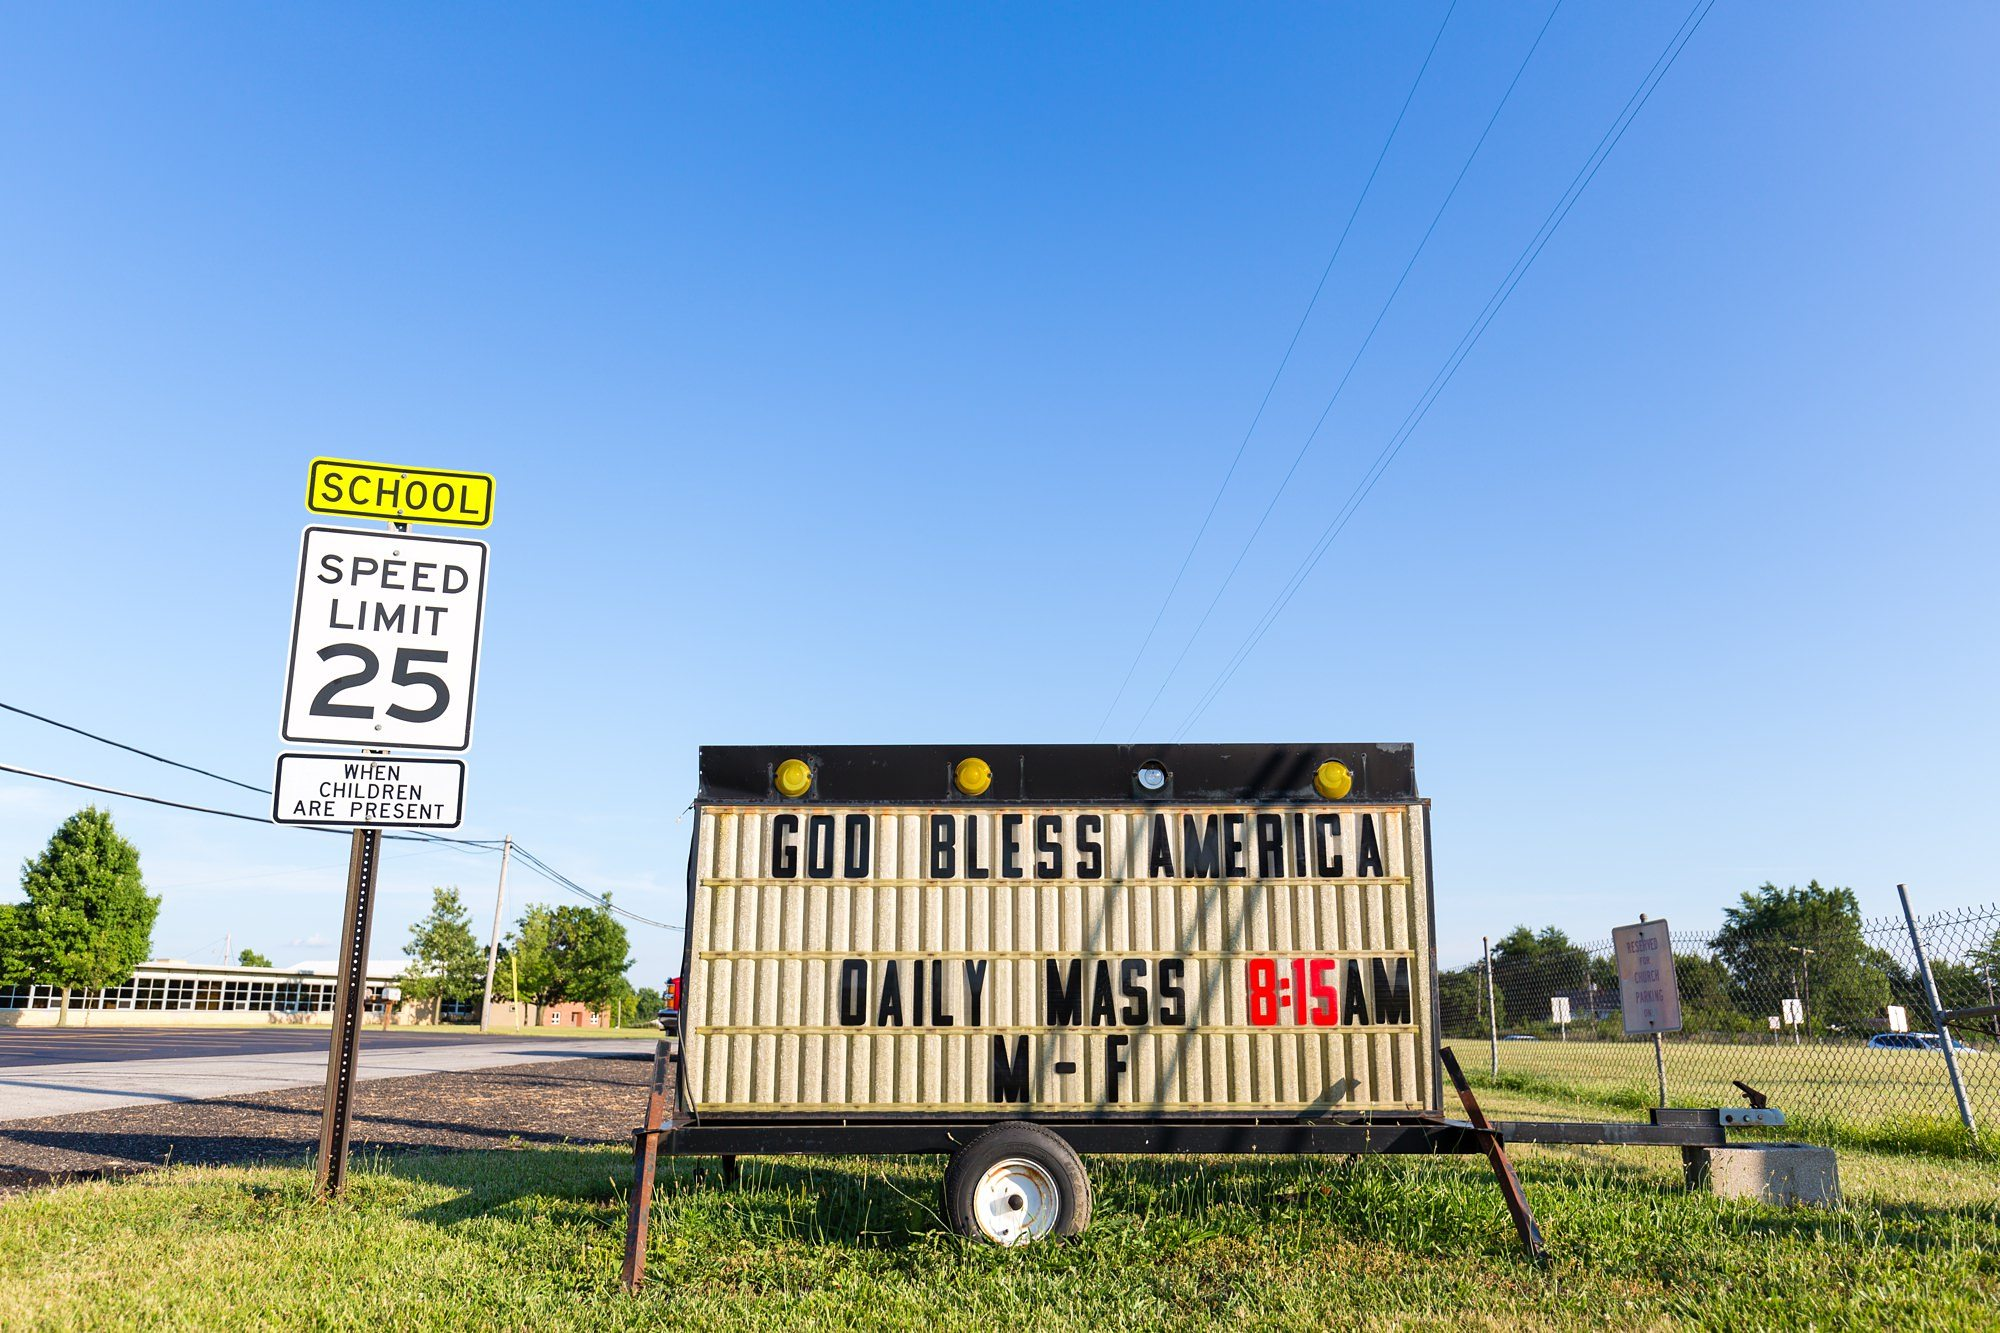 God bless America sign next to speed limit sign in Ft. Wayne Indiana